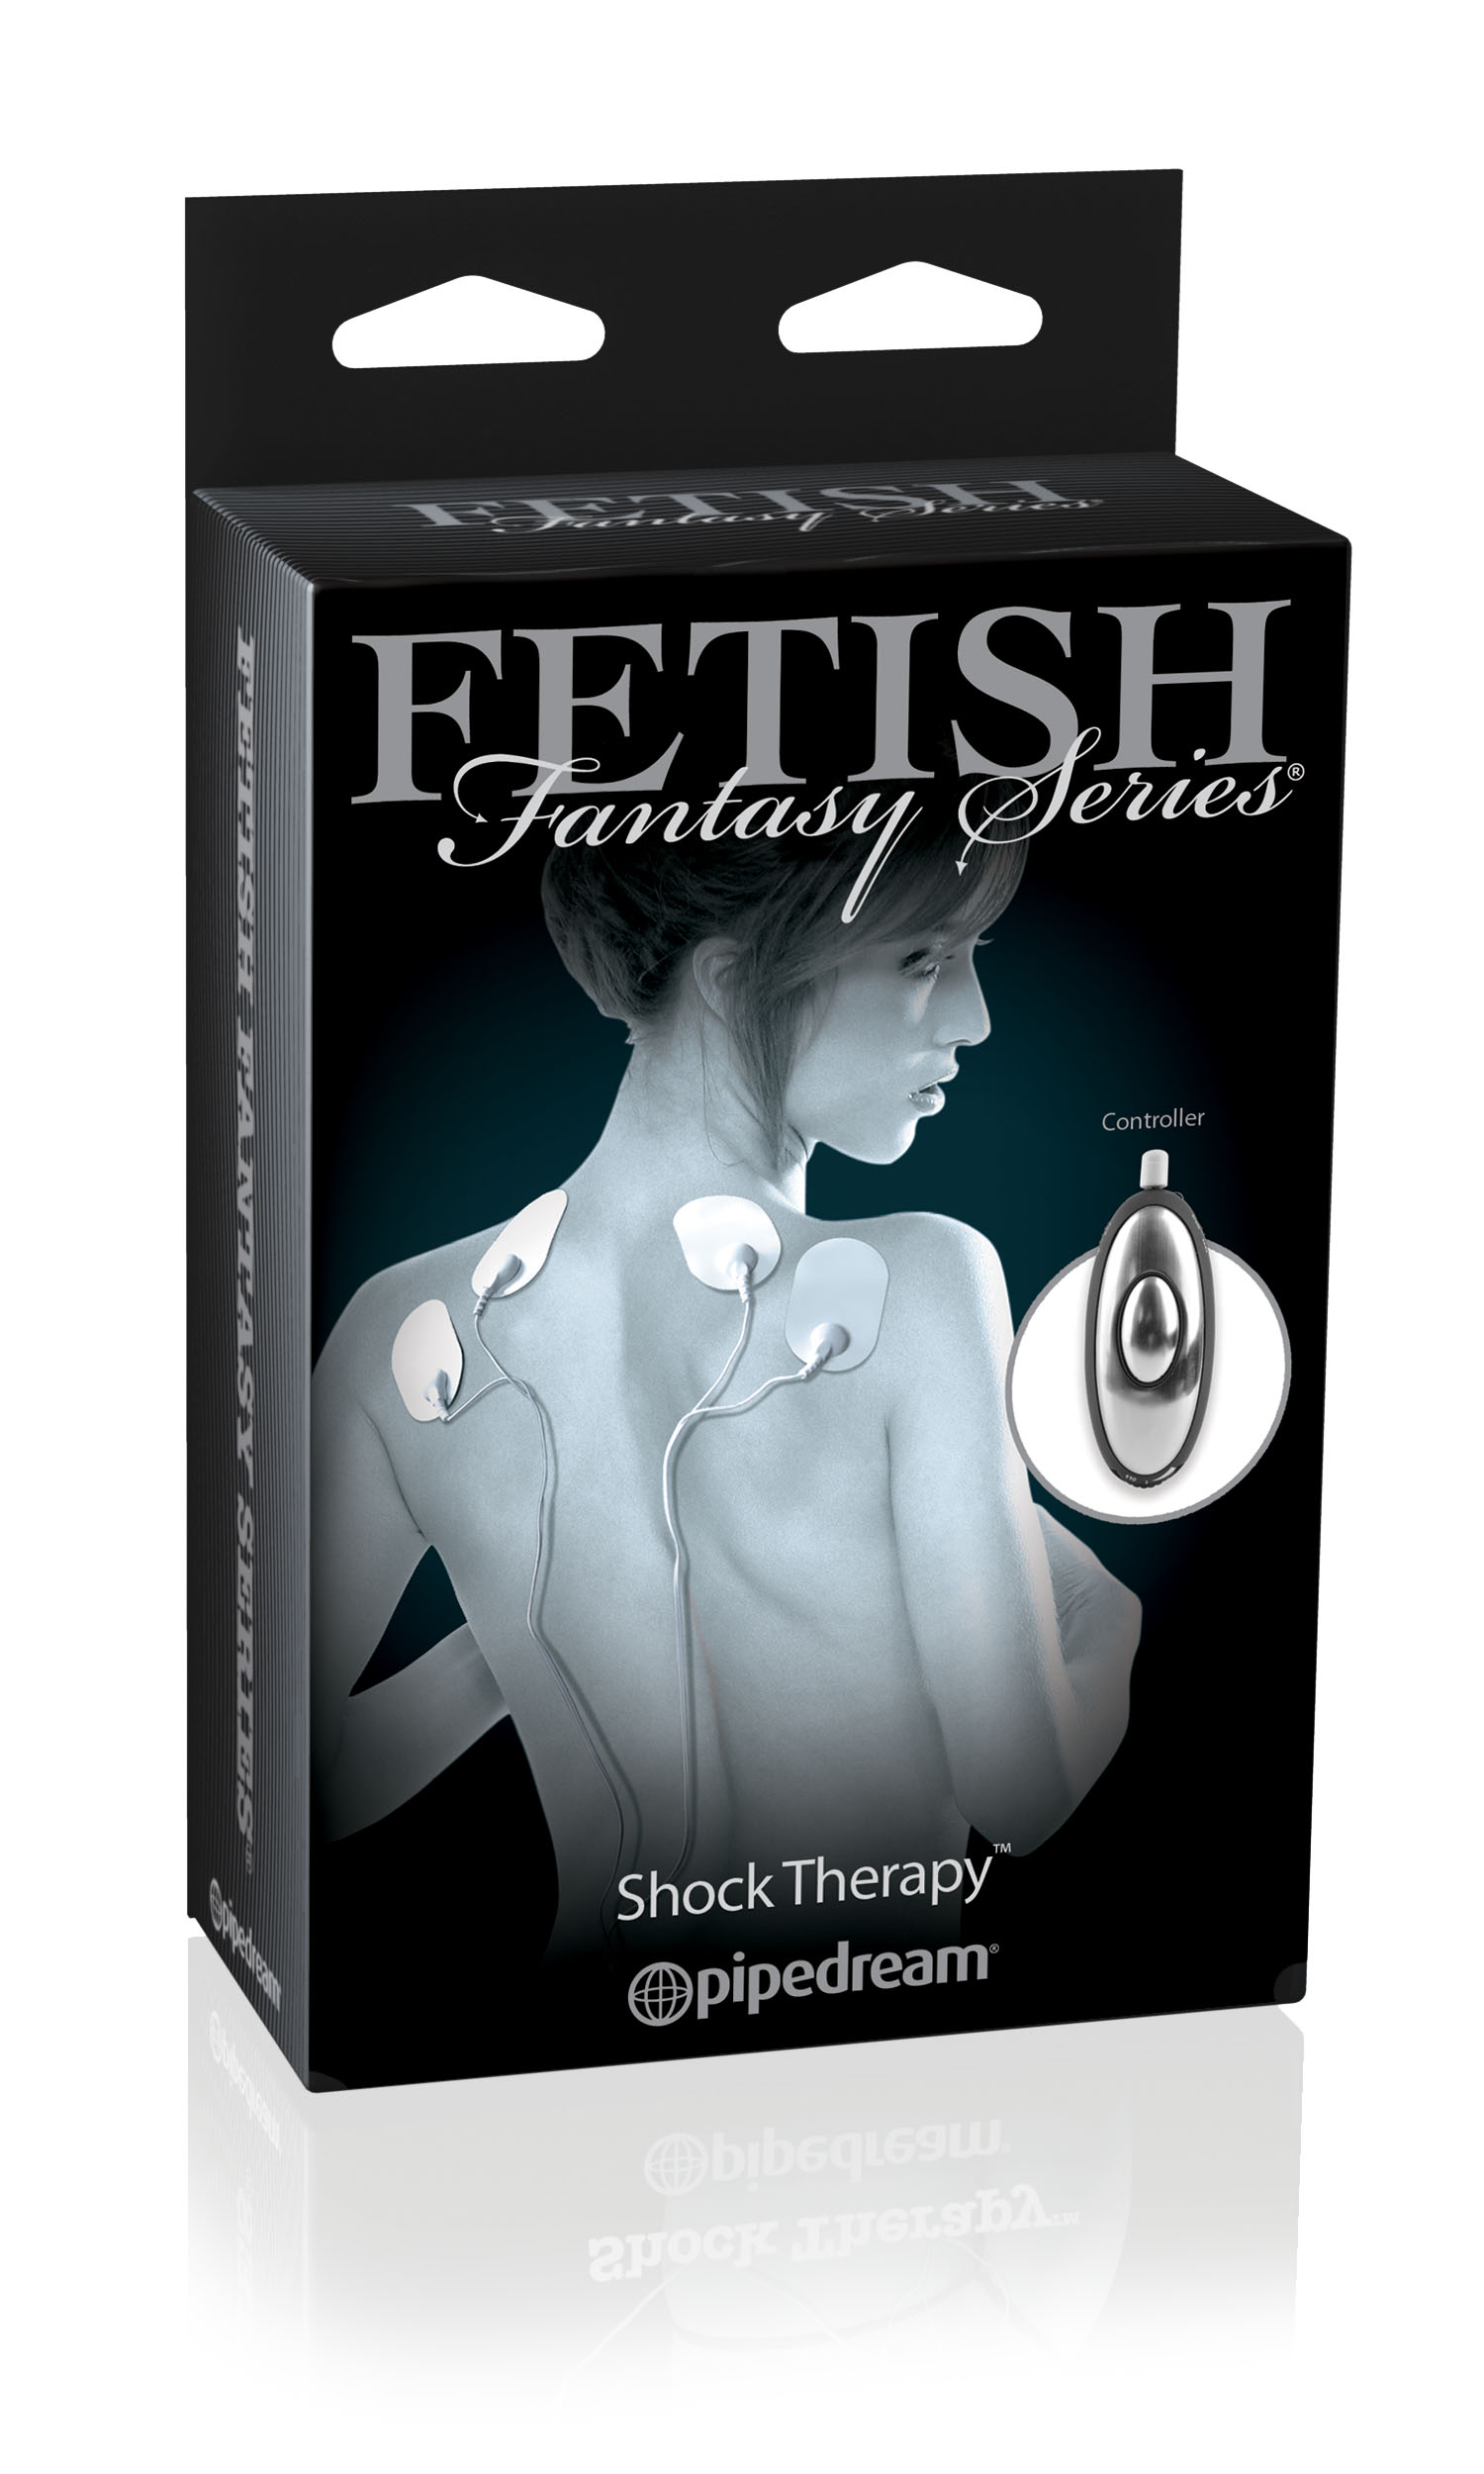 FETISH FANTASY LIMITED EDITION SHOCK THERAPY